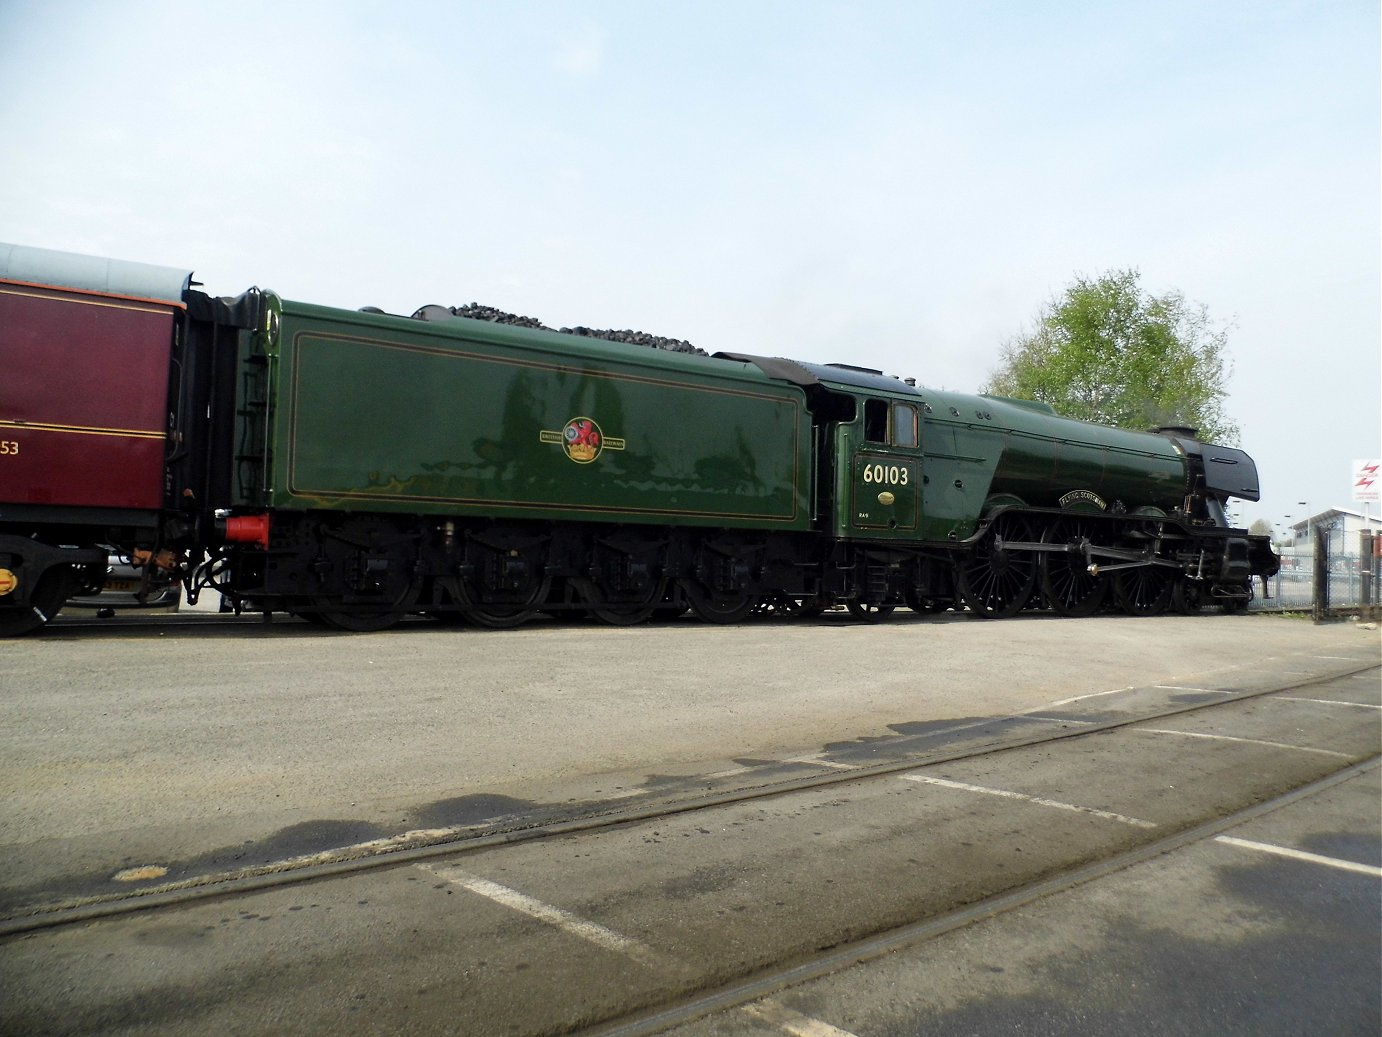 103 Flying Scotsman, Sat 28/12/2013.